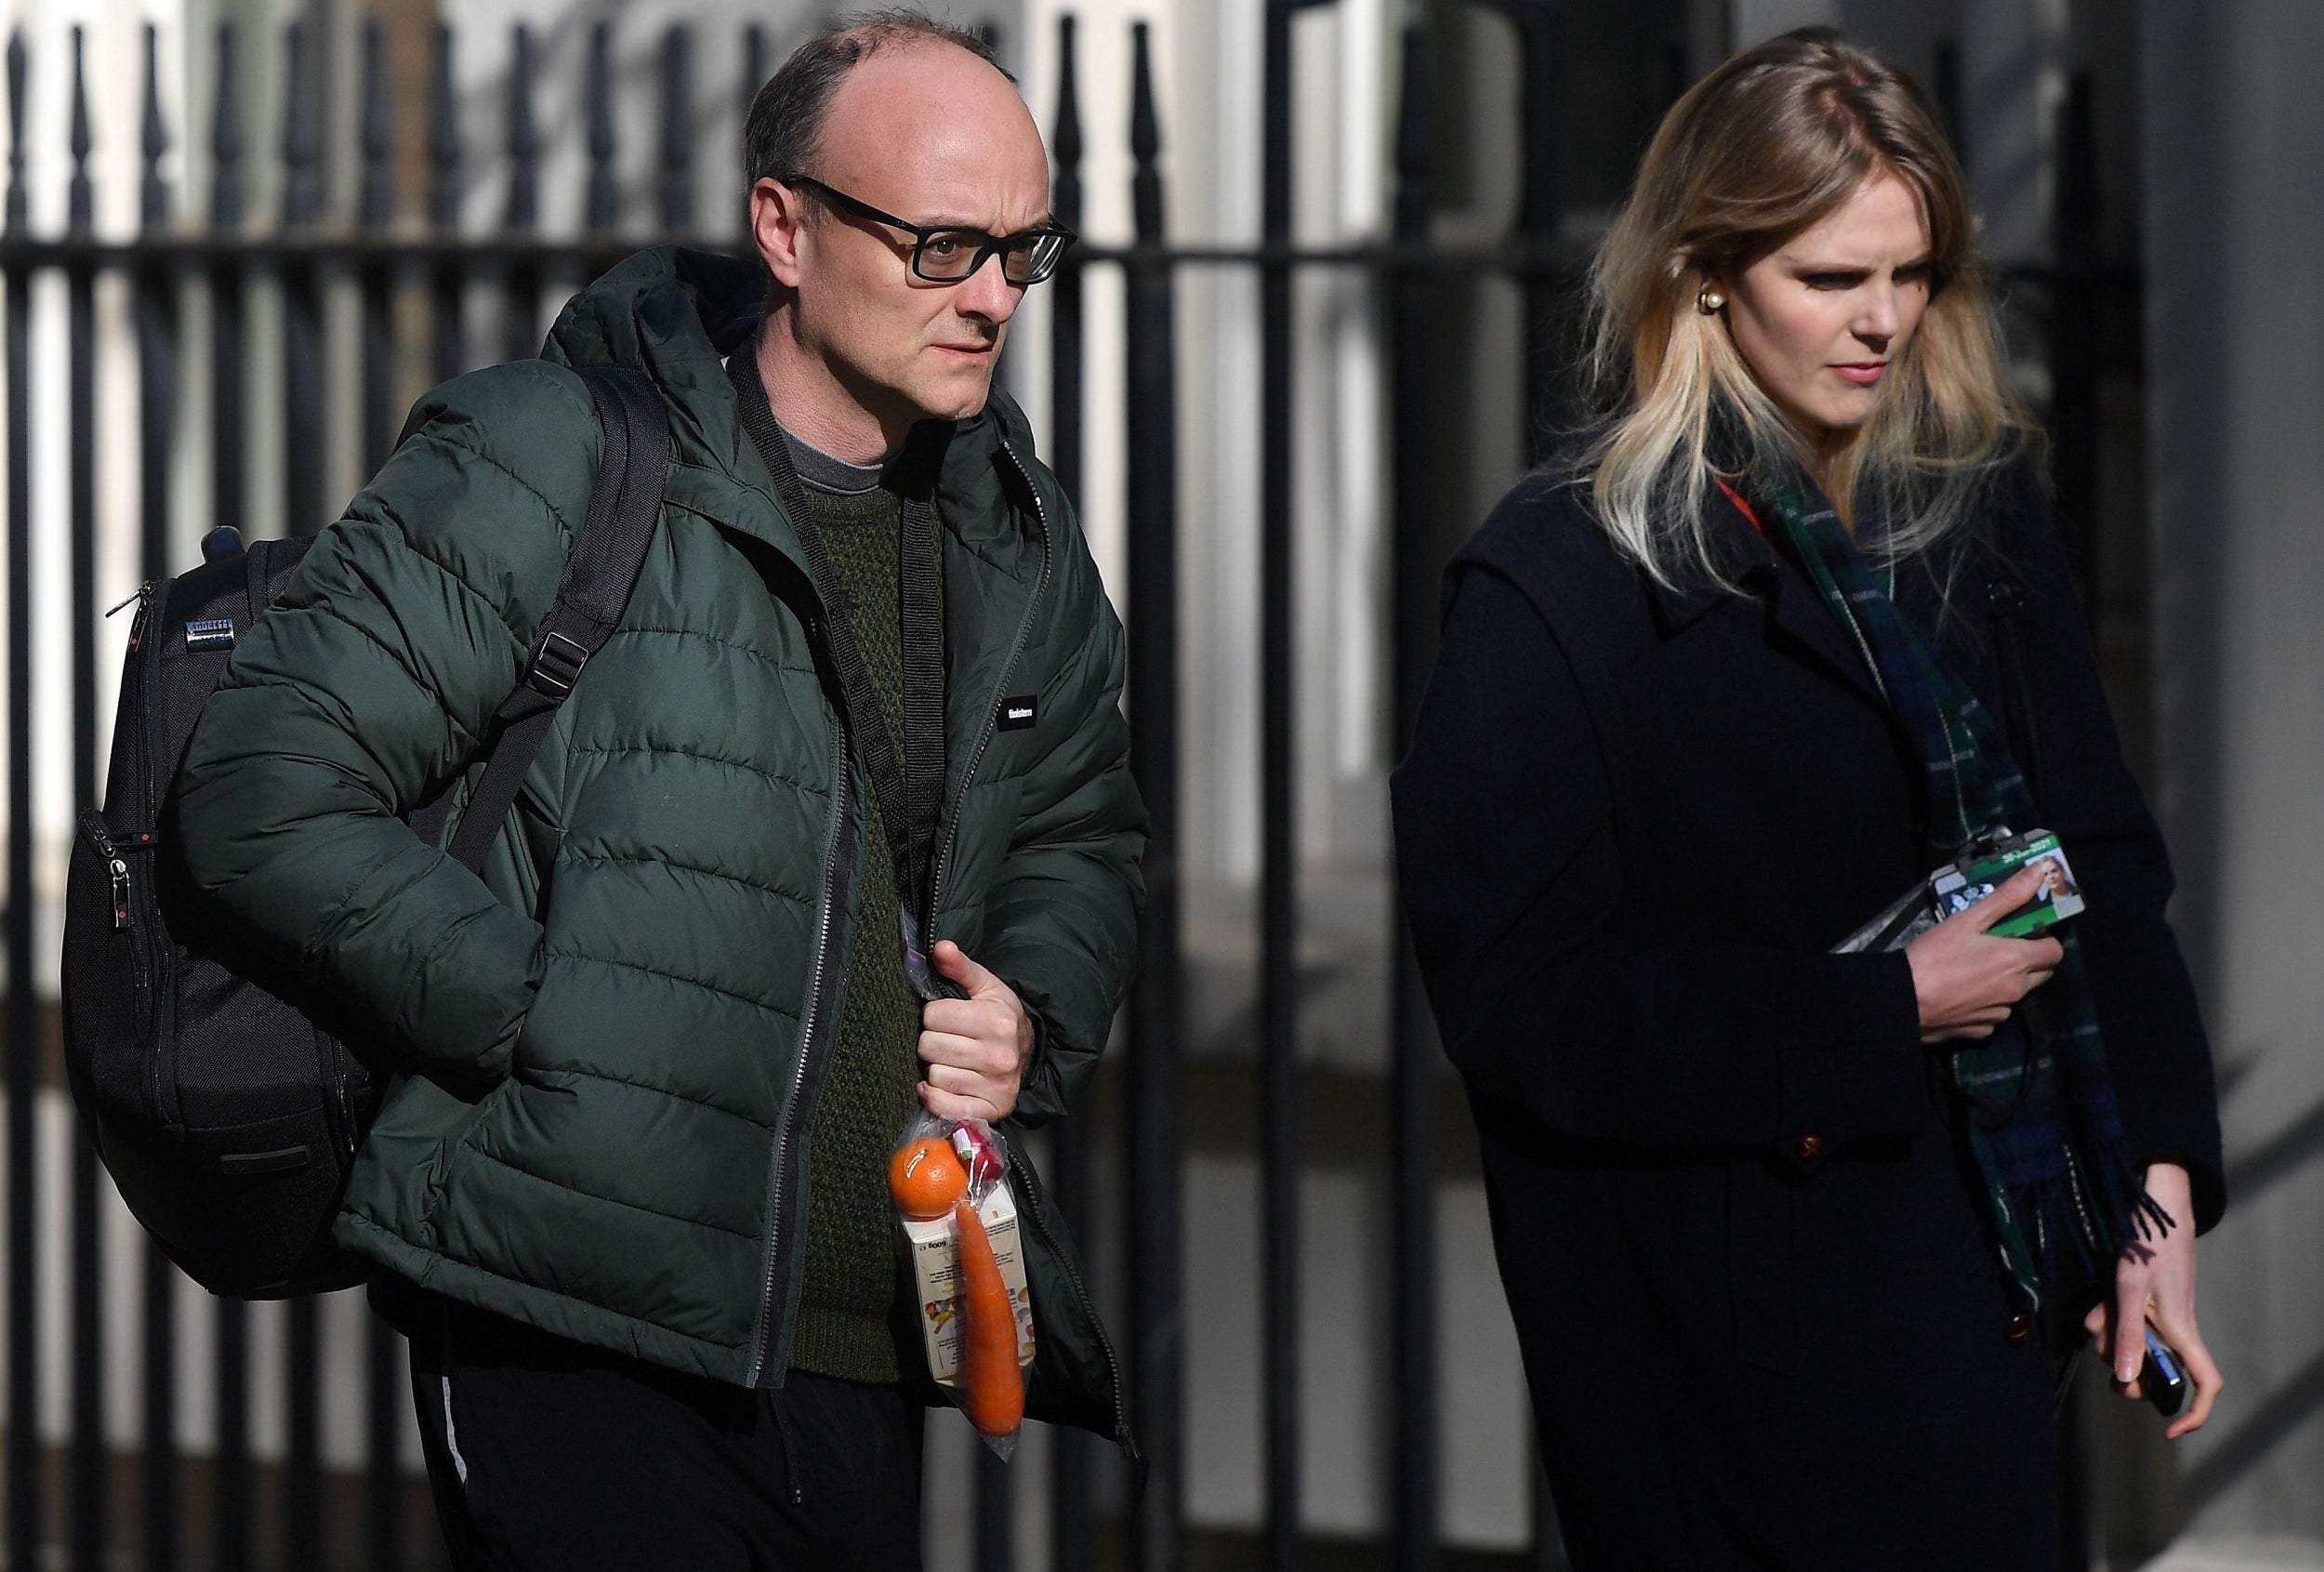 Coronavirus: Ministers face questions over Dominic Cummings' attendance of key scientific advisory group thumbnail